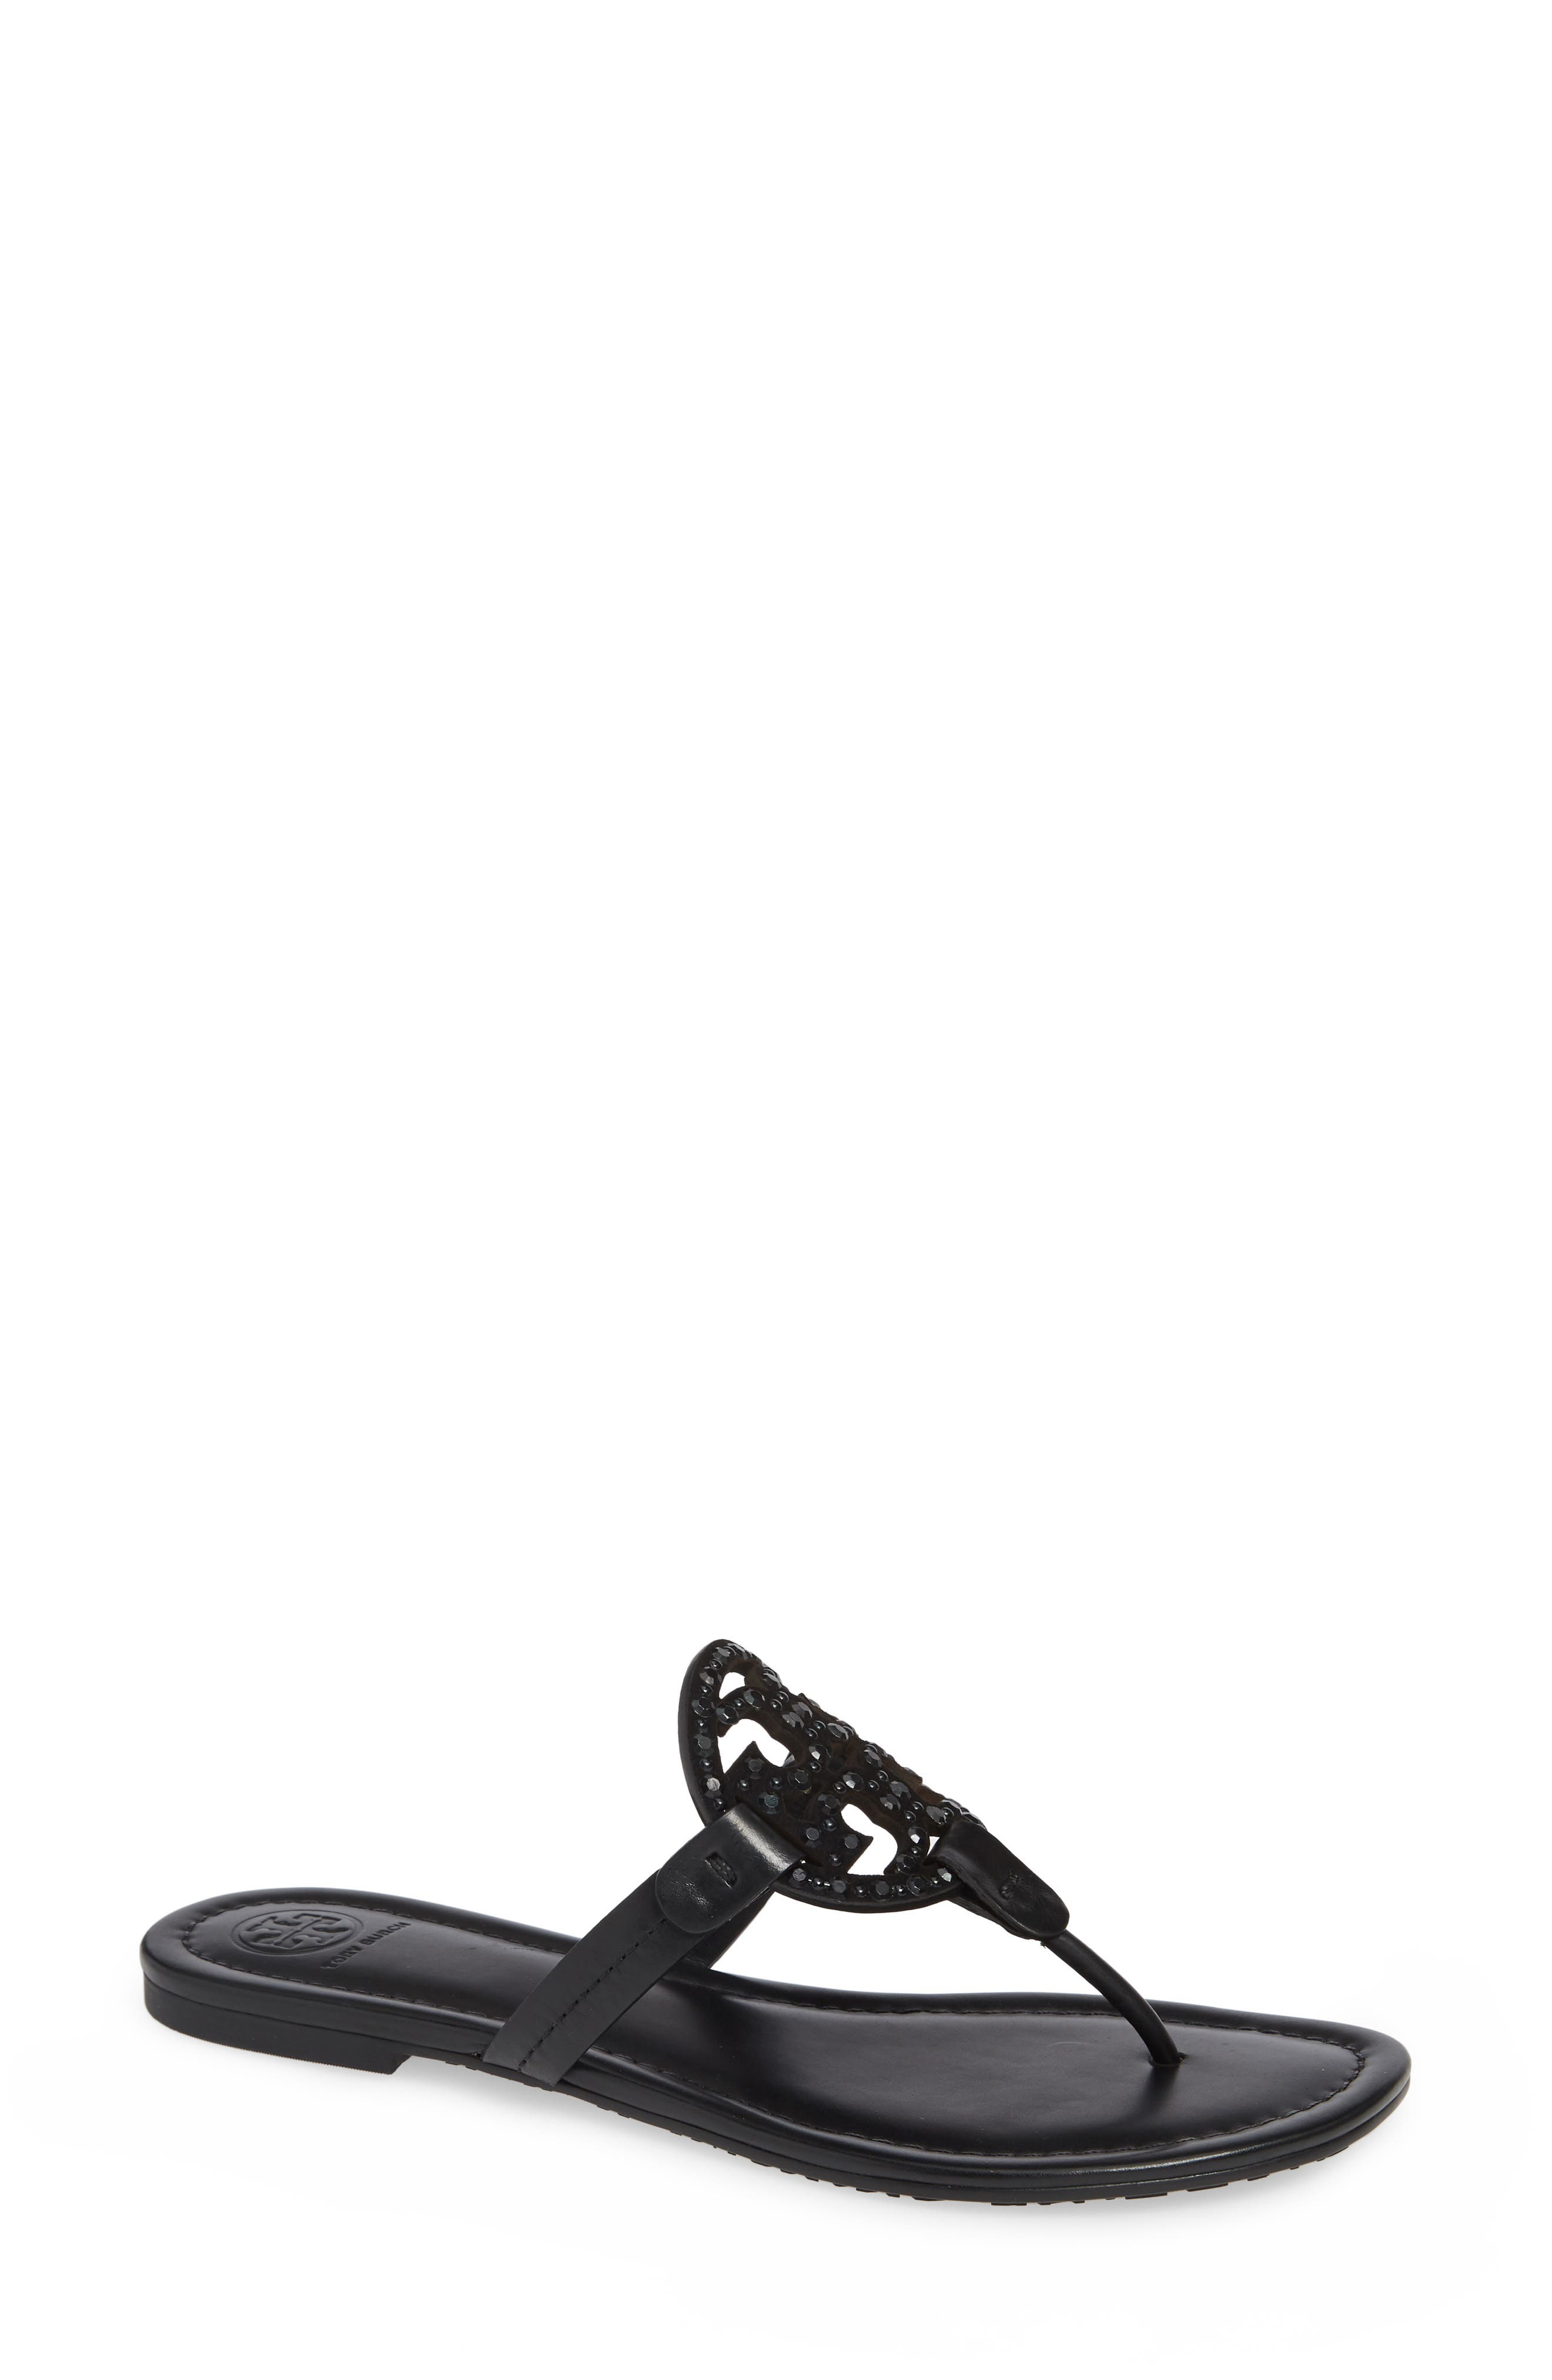 Miller Embellished Sandal,                             Main thumbnail 1, color,                             PERFECT BLACK